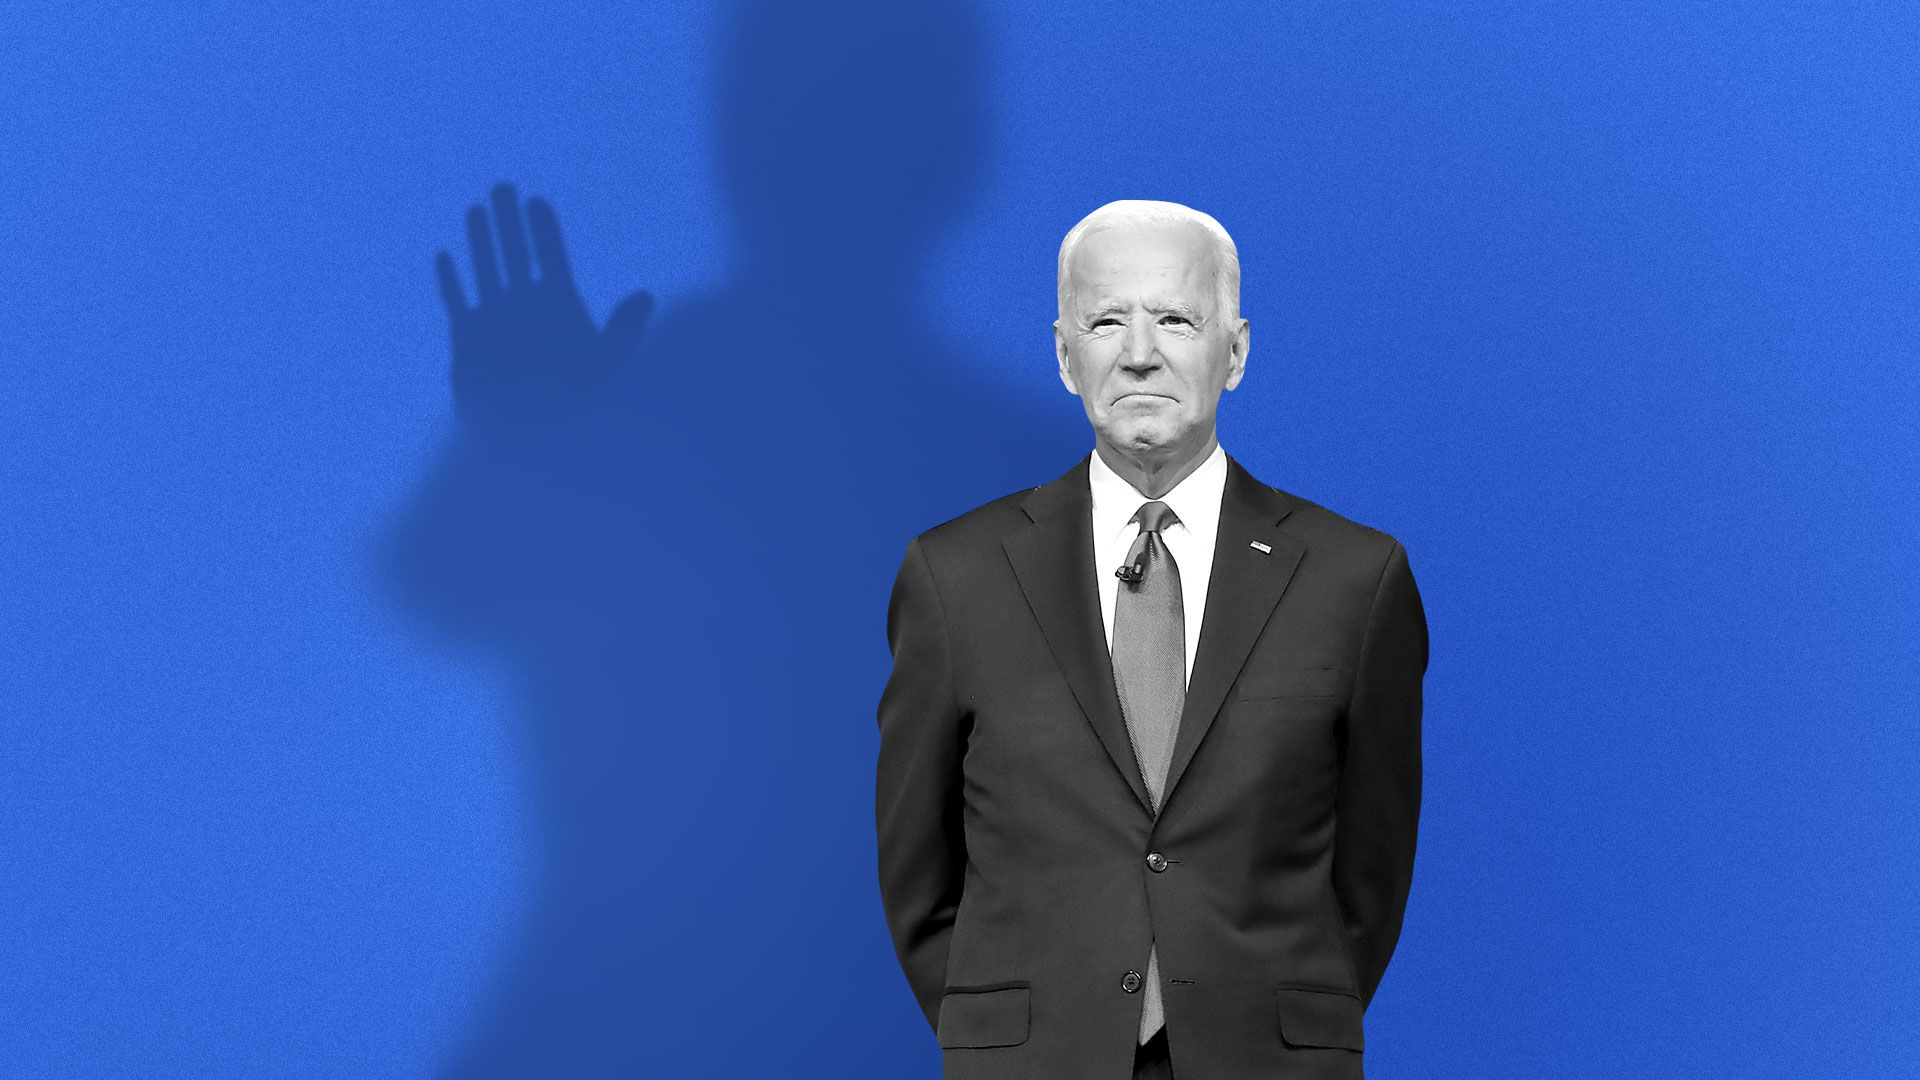 Illustration of Joe Biden with a shadow behind him reaching their hand out